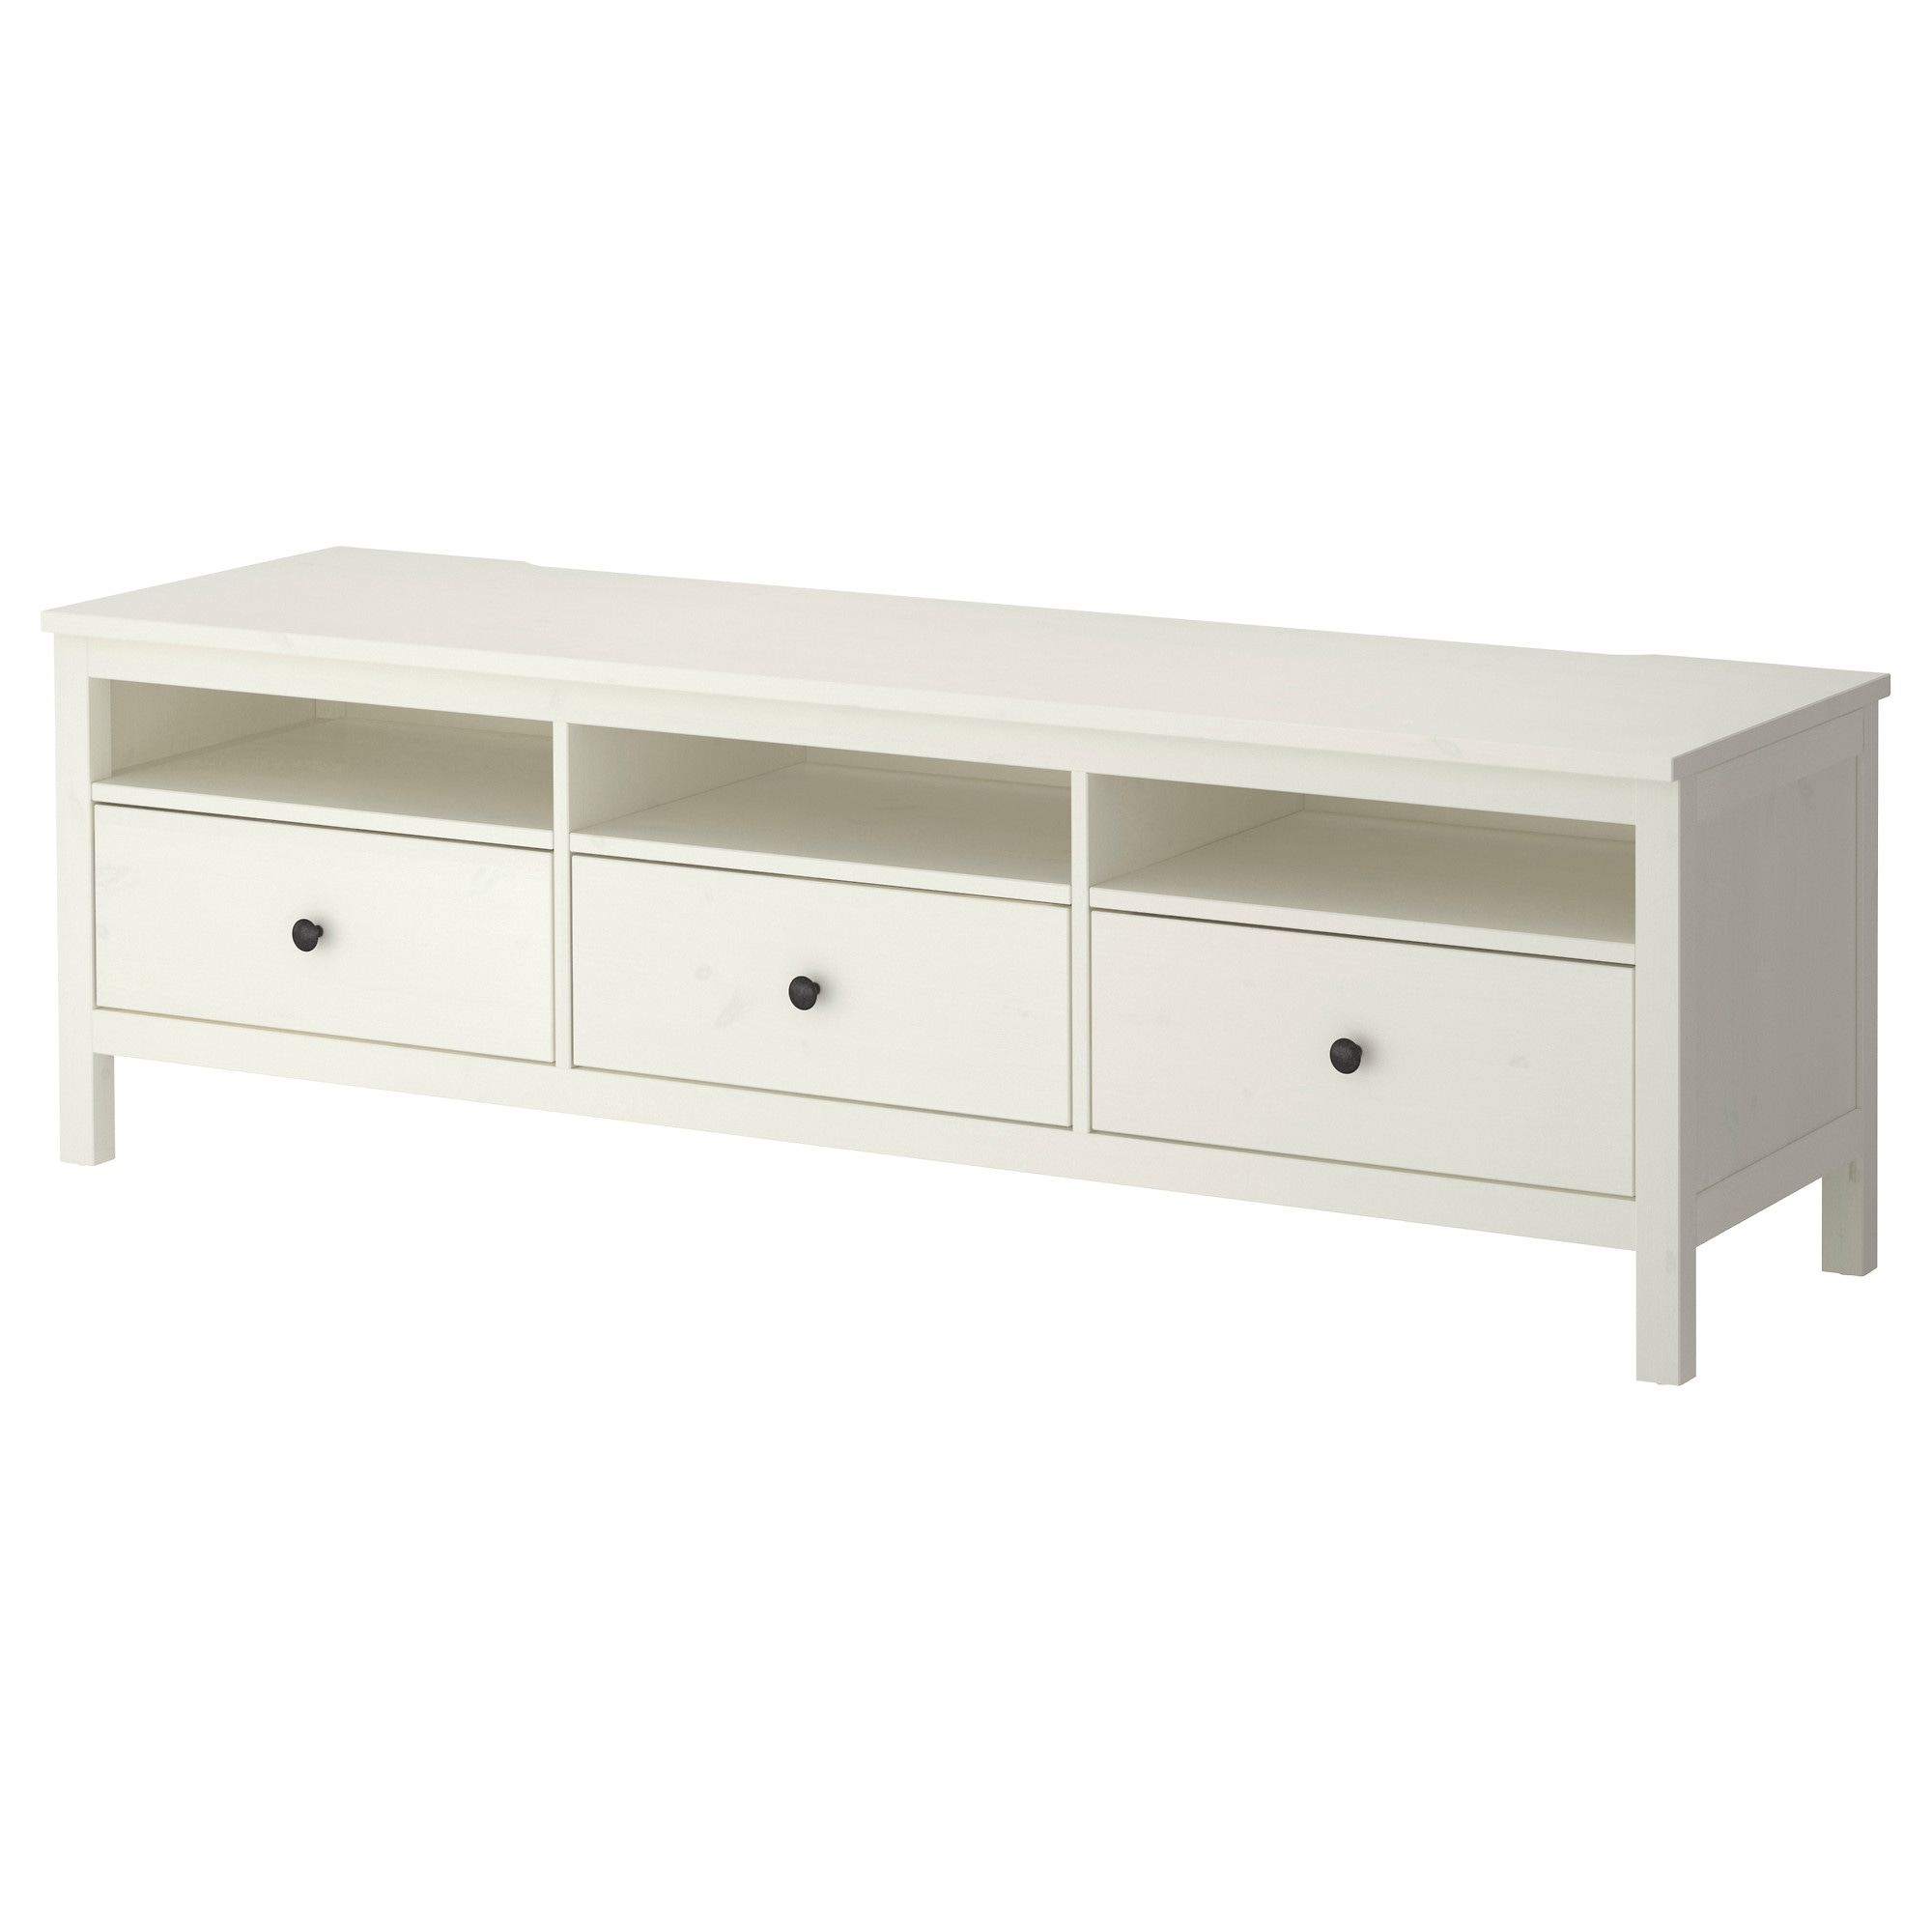 Hemnes Tv Bench White Stain Ikea # Buffet Meuble Tv Ikea